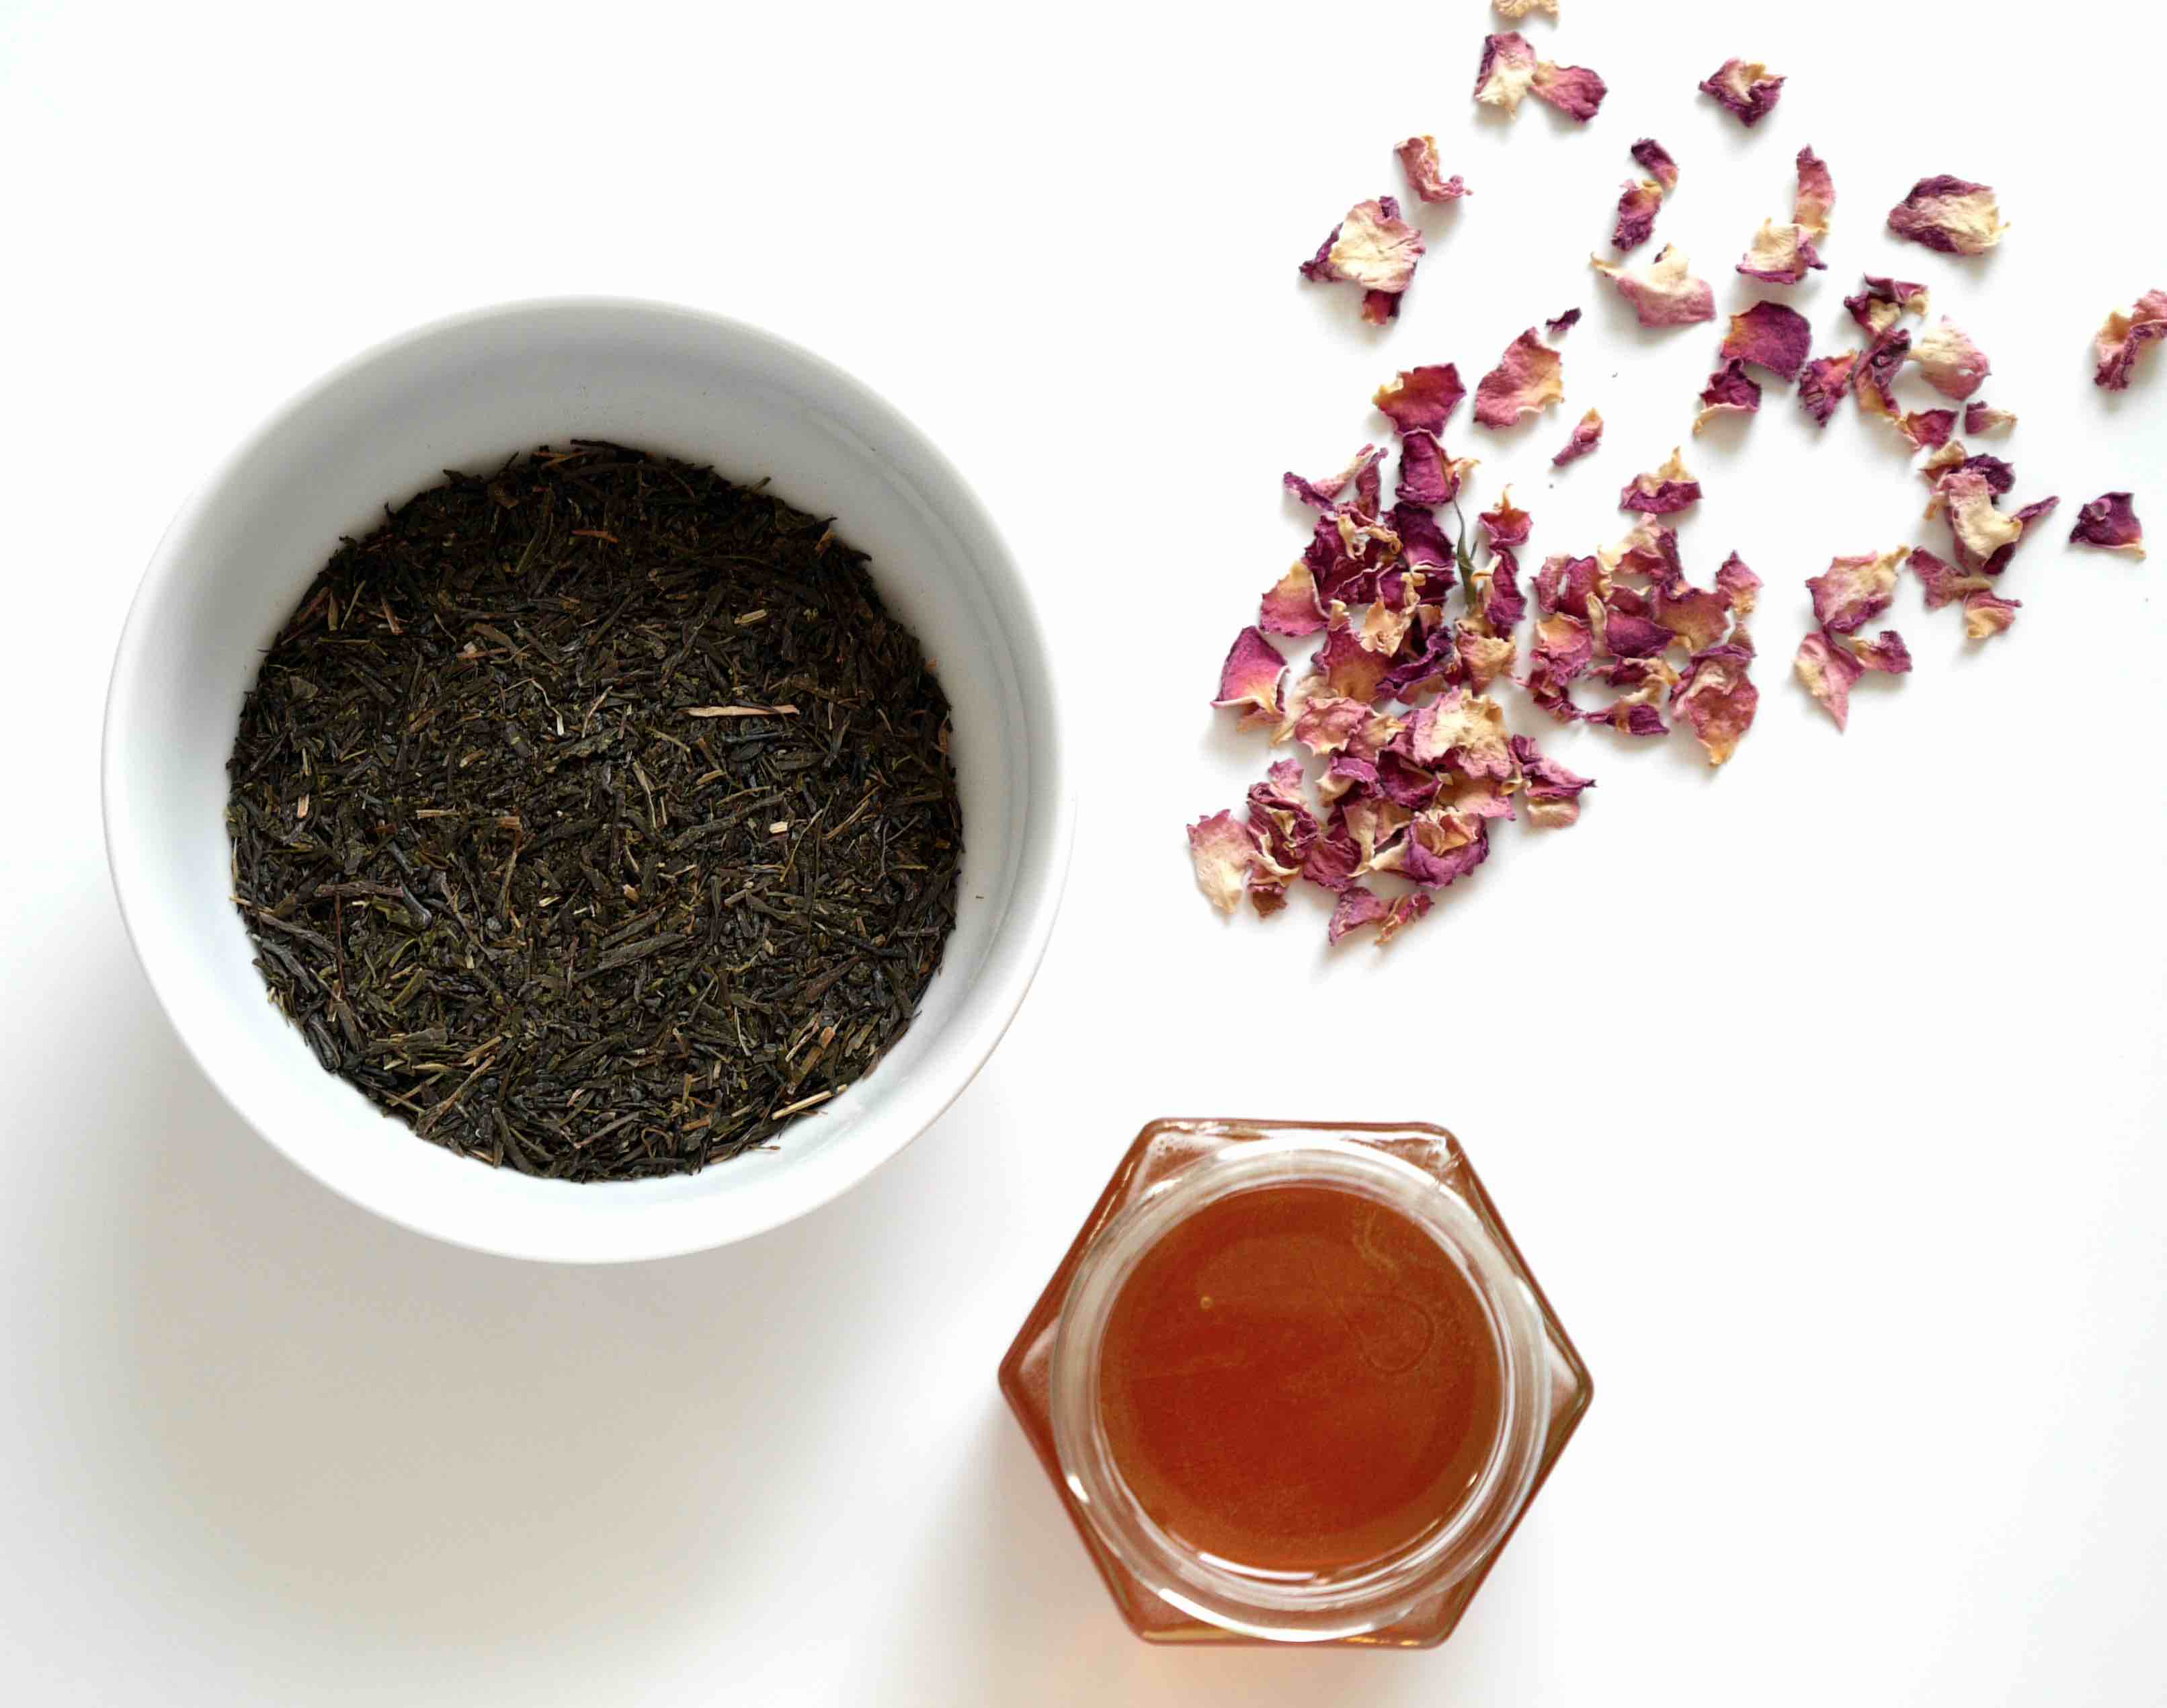 Homemade Skin Care: The Secret Behind a Beautiful Complexion